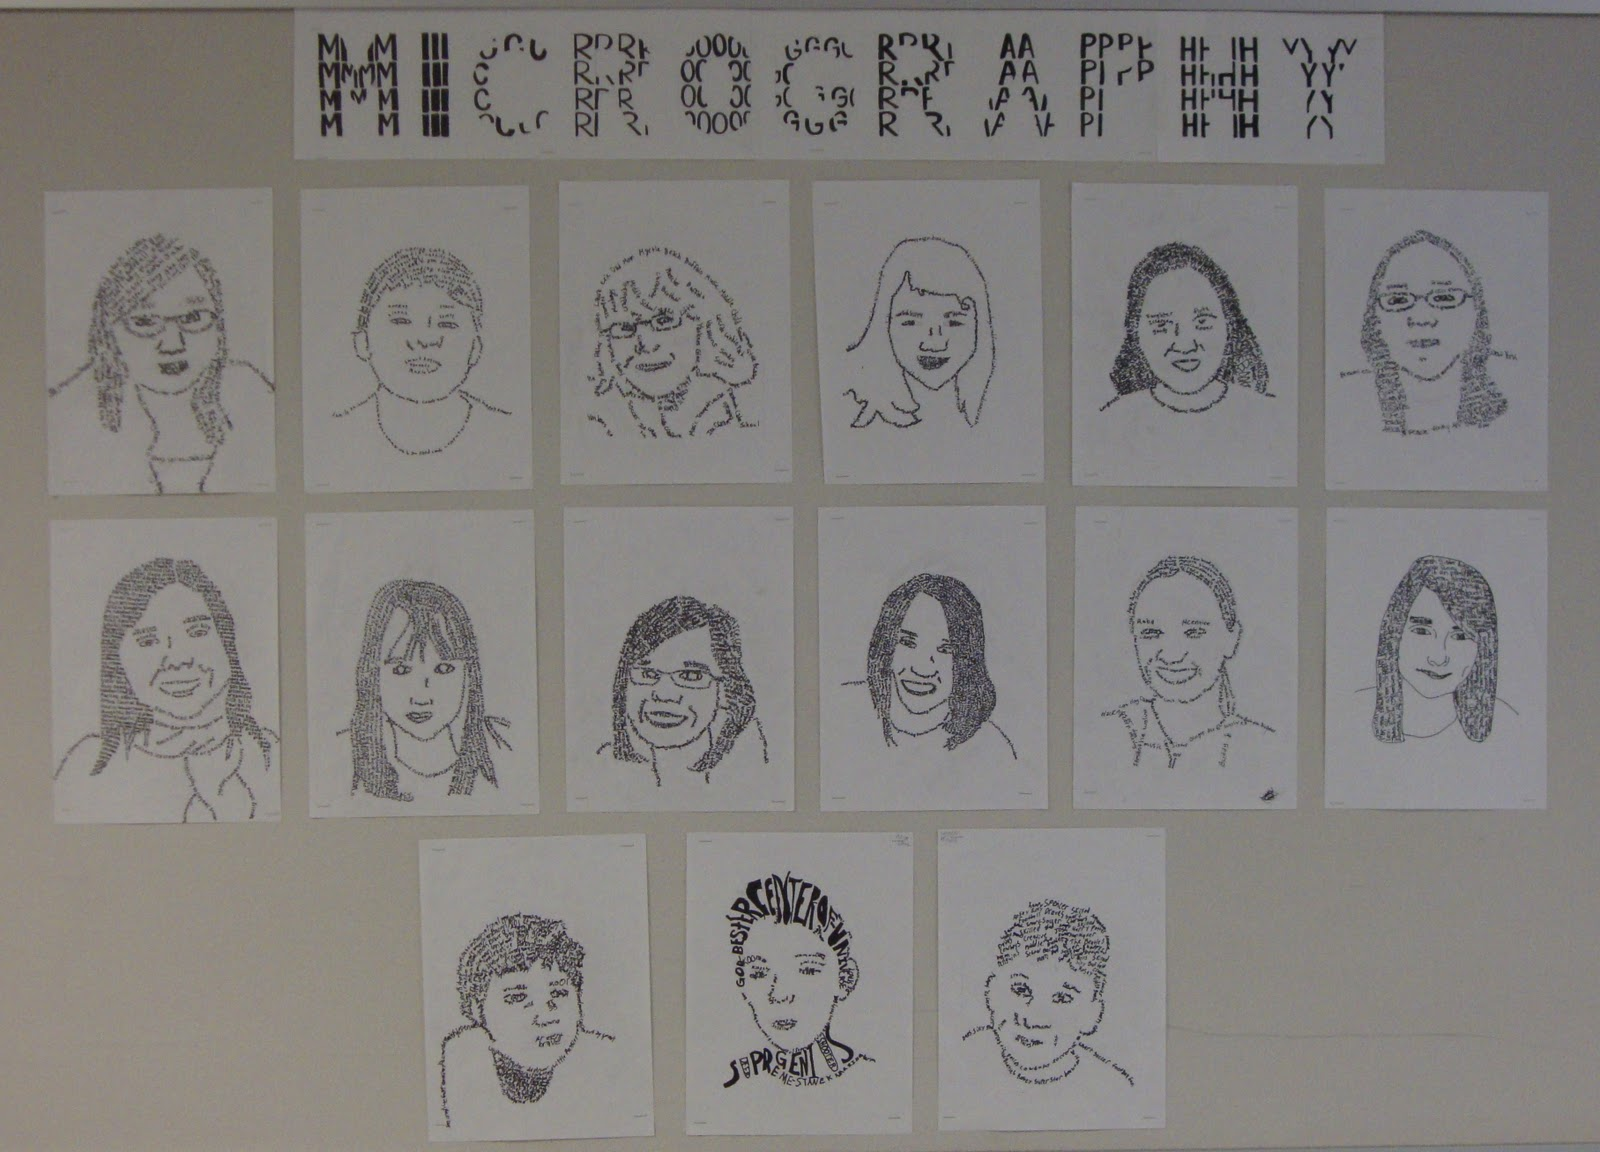 Line Project Art : Art paper scissors glue micrography portrait